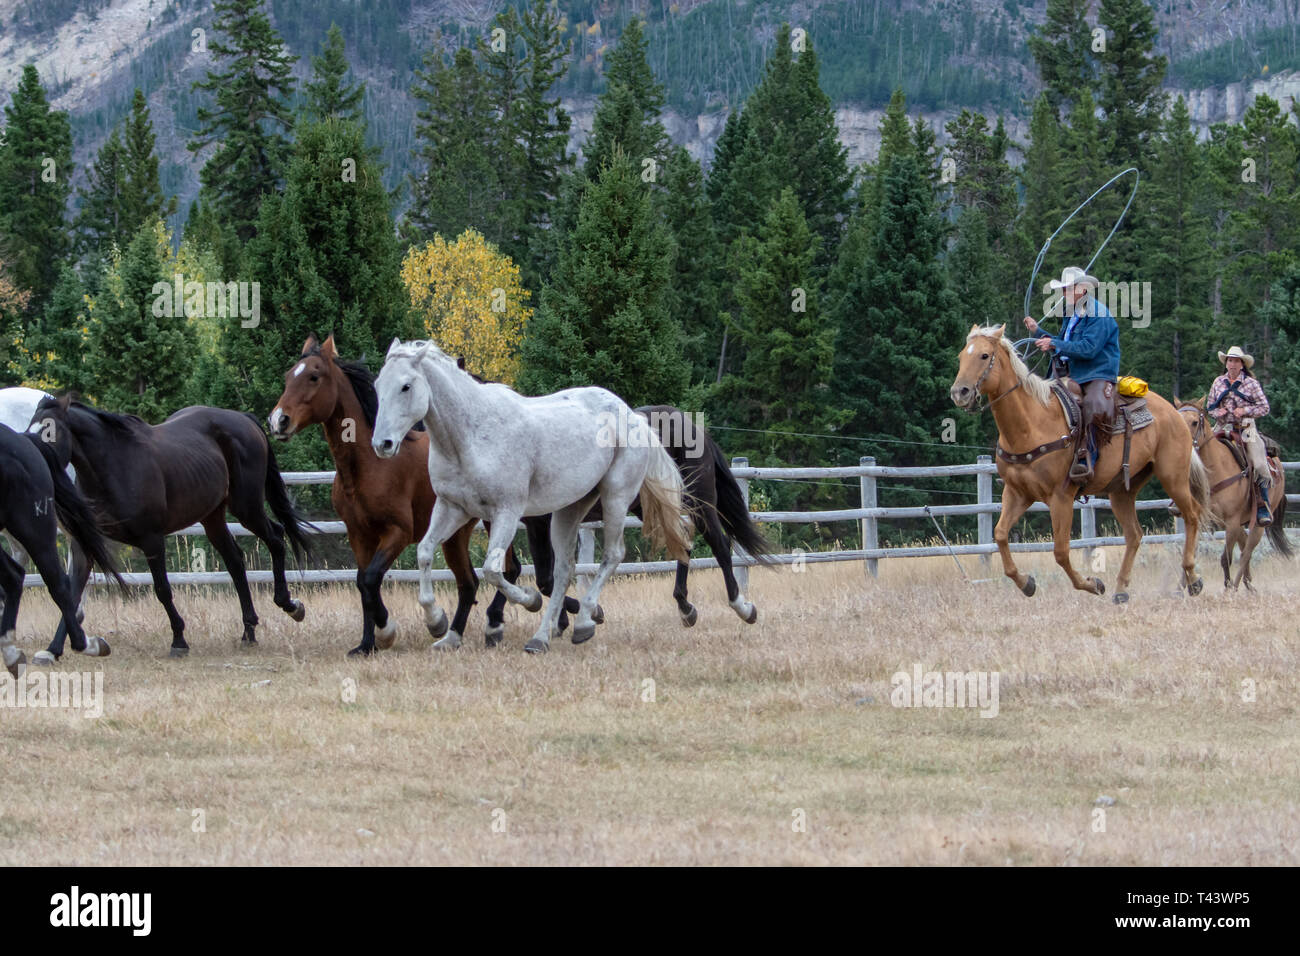 Cowboys lasso horses in the corral - Stock Image